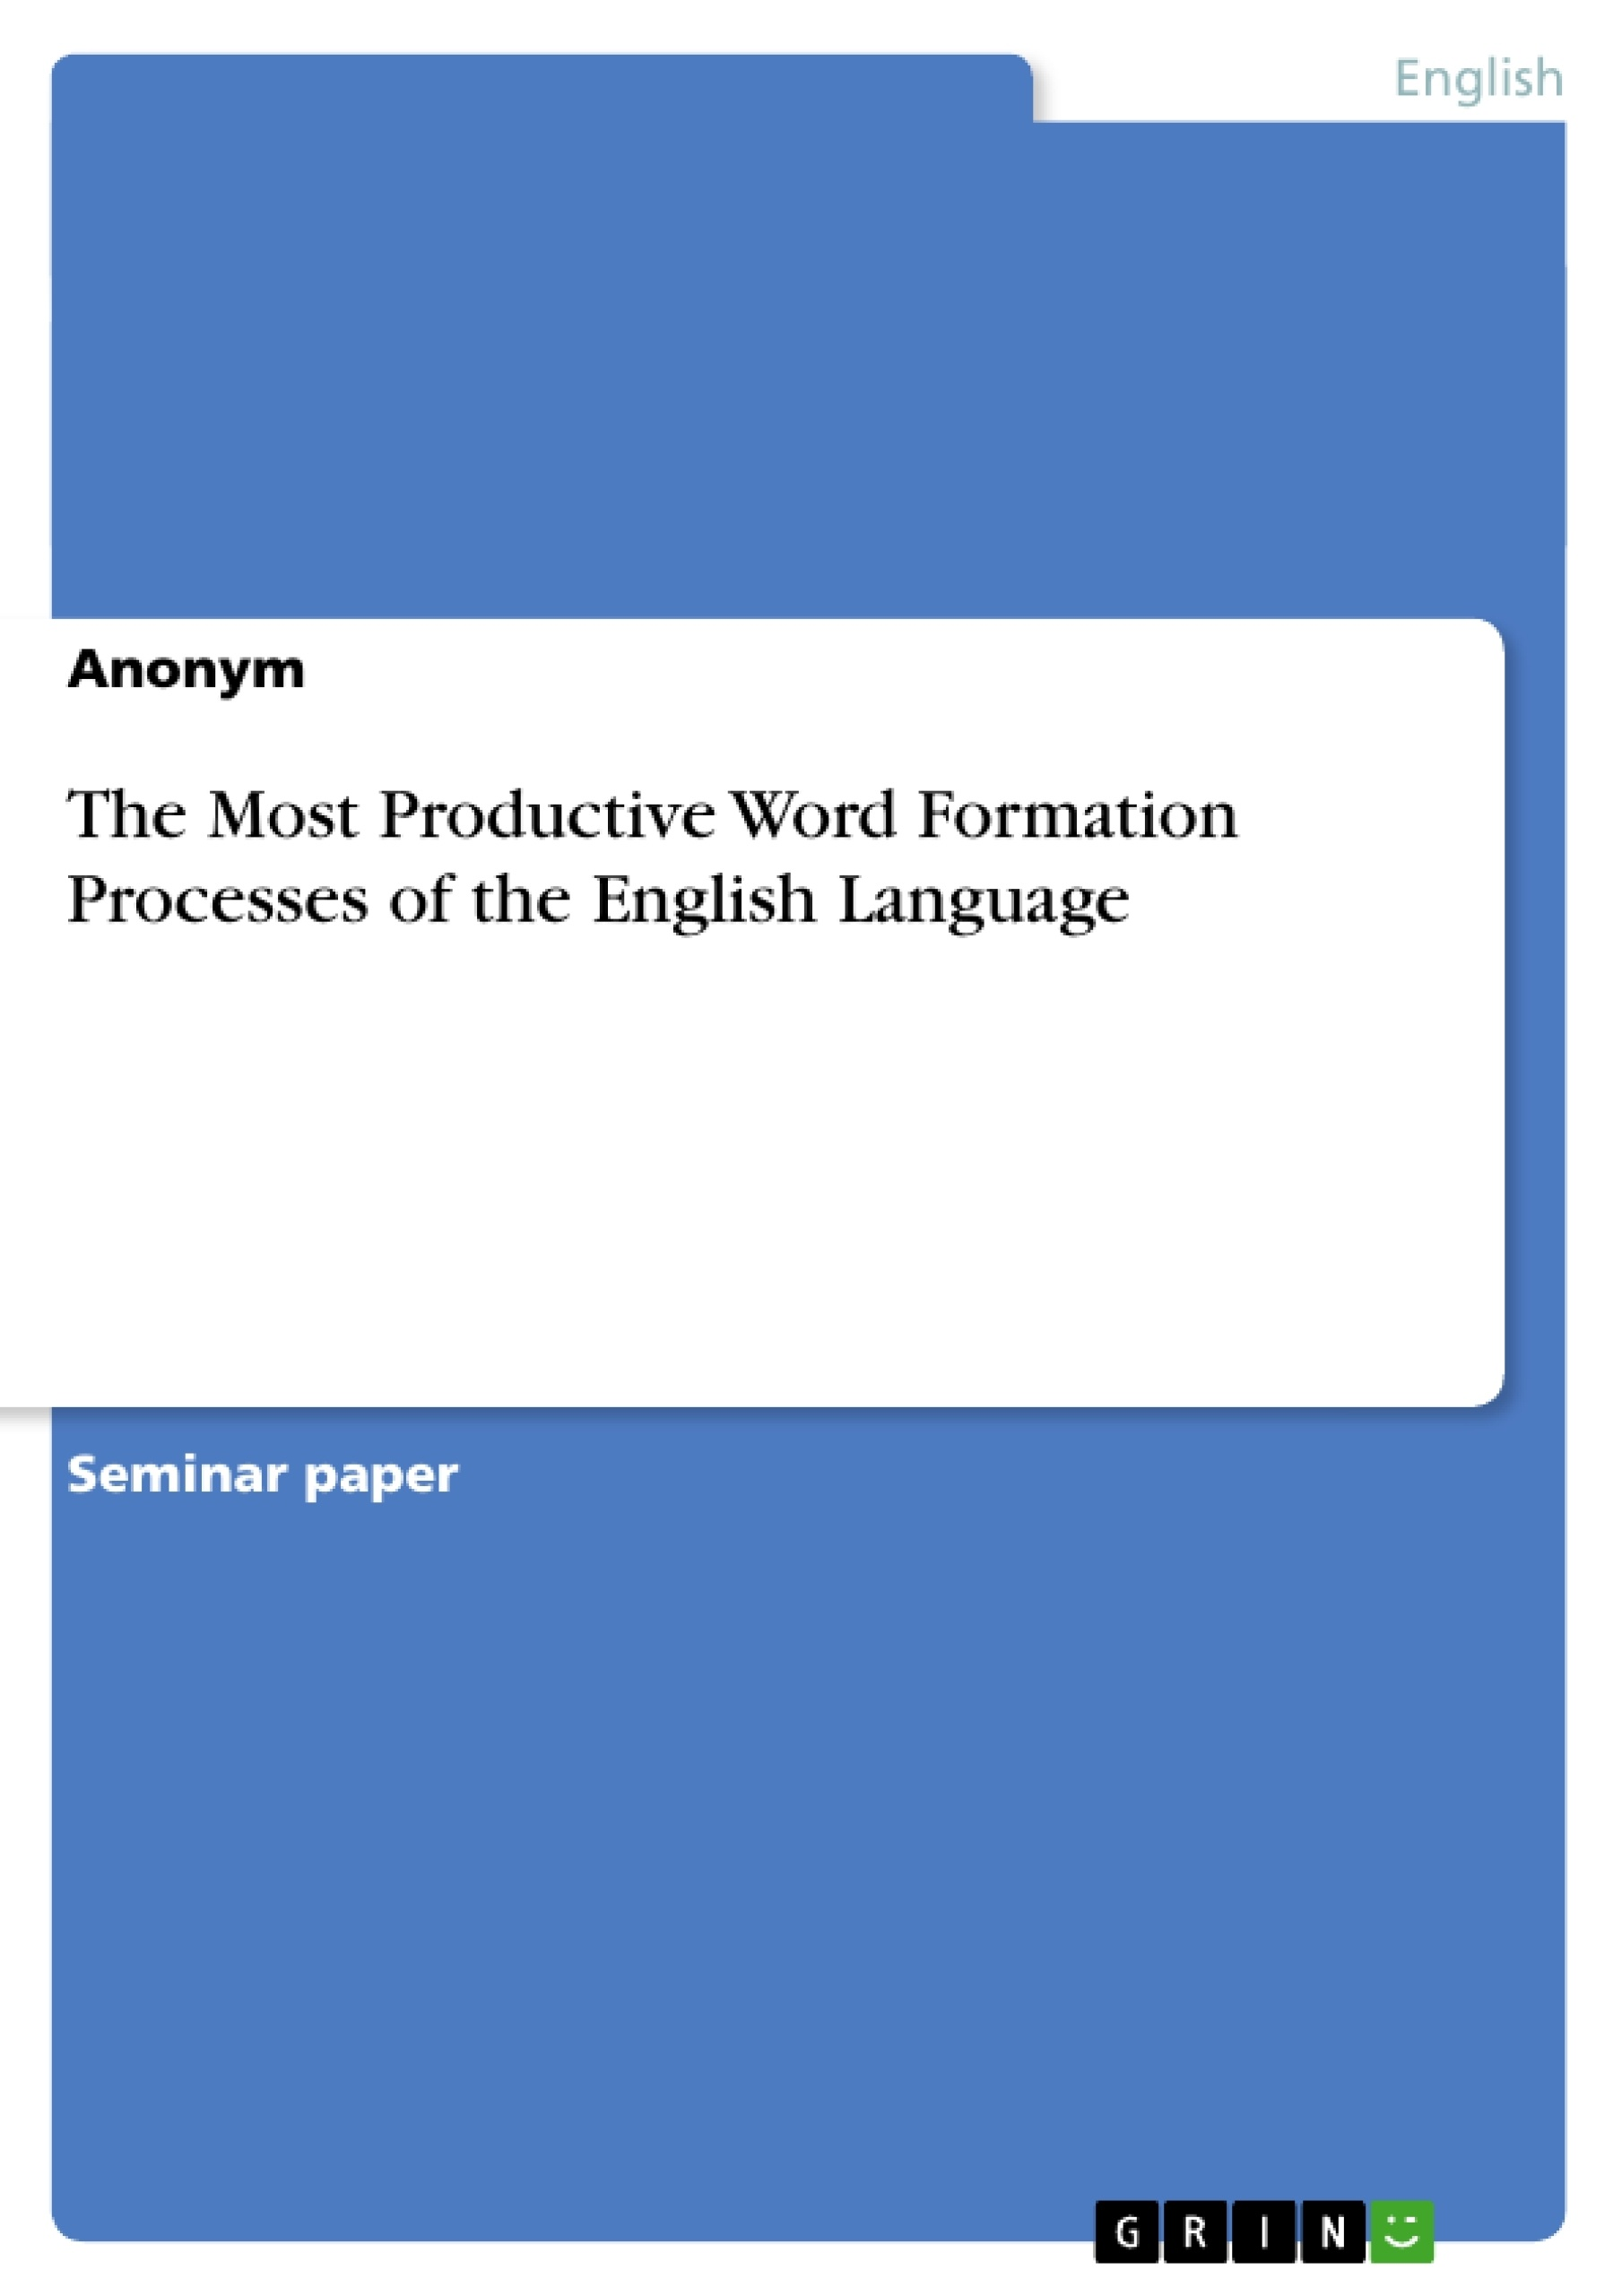 Title: The Most Productive Word Formation Processes of the English Language